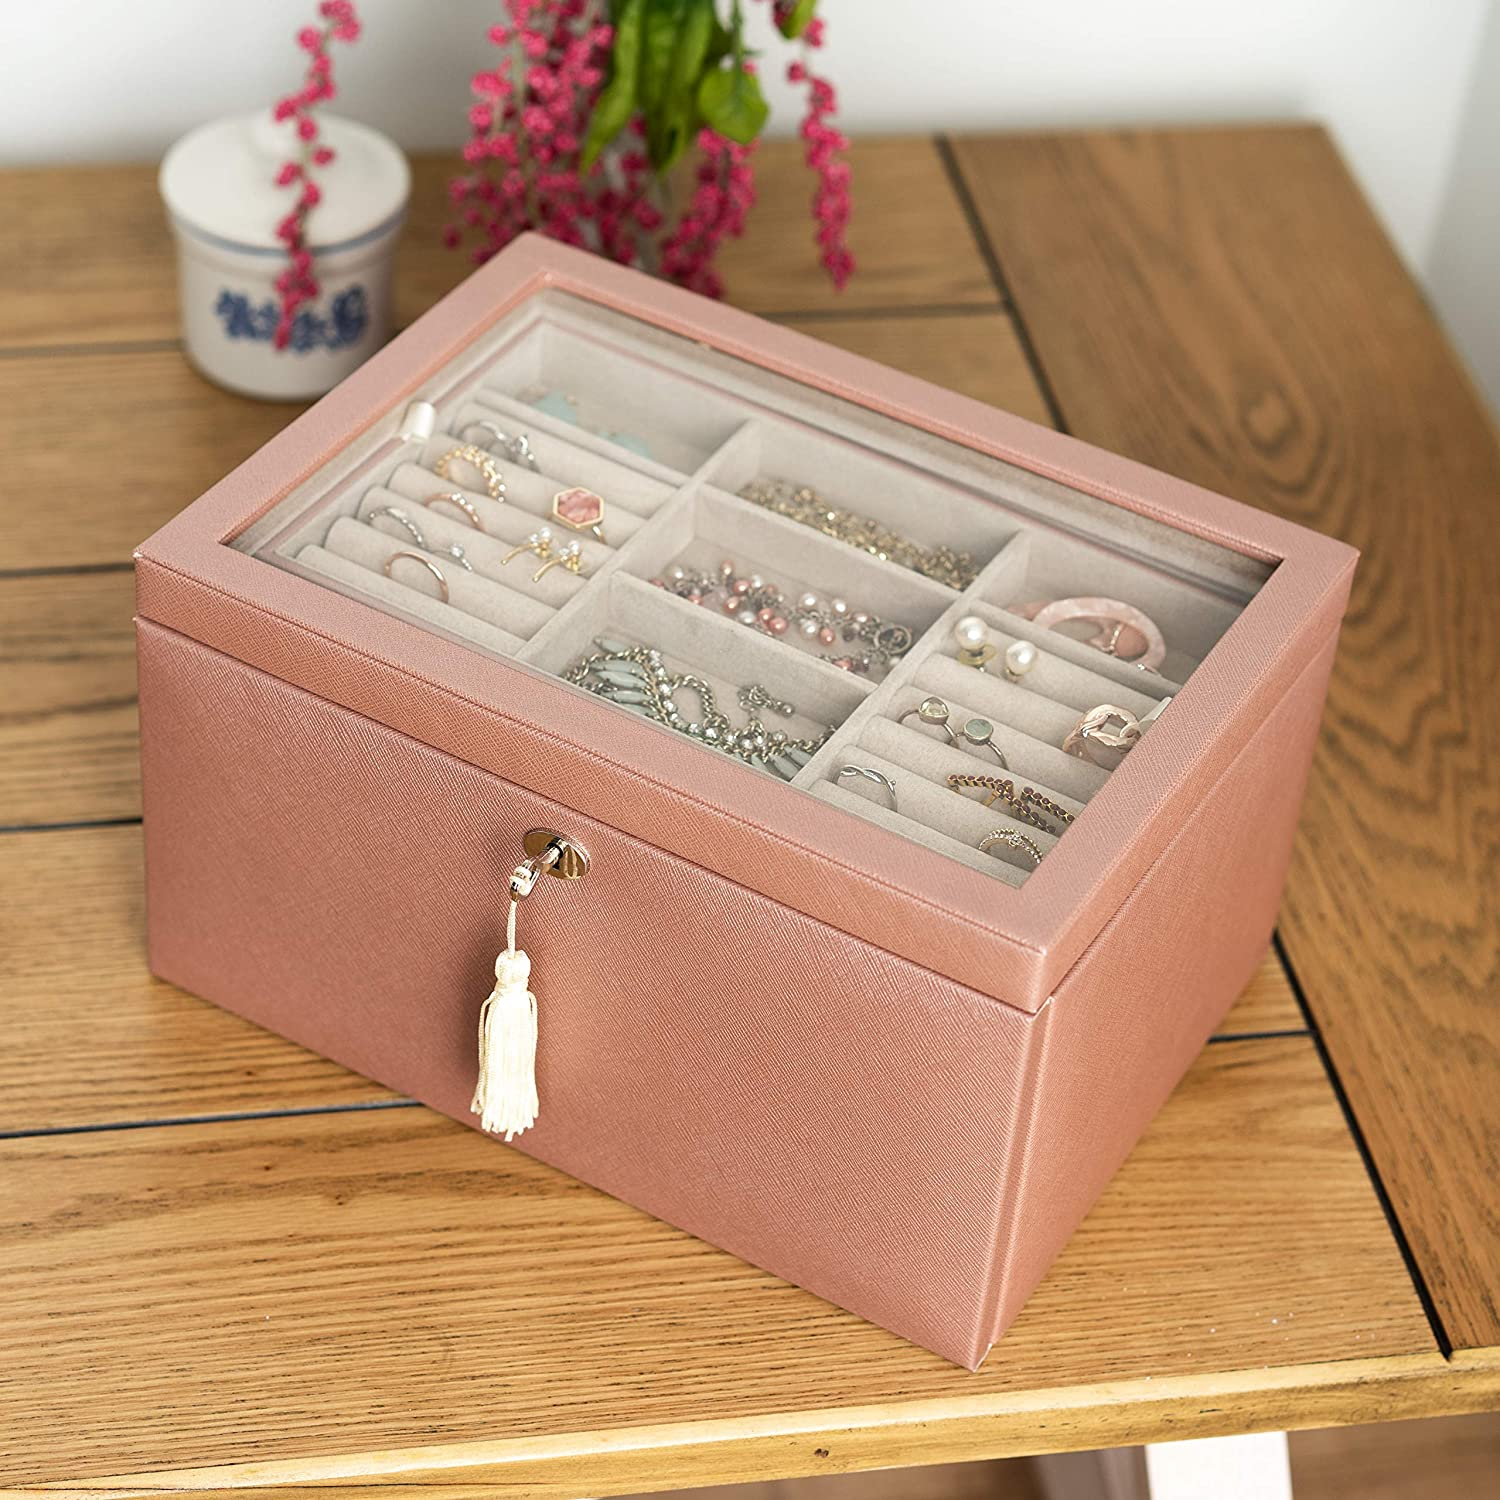 Hives and Honey Emily Luxe Chest Blush Jewelry Storage 新作製品、世界最高品質人気! 往復送料無料